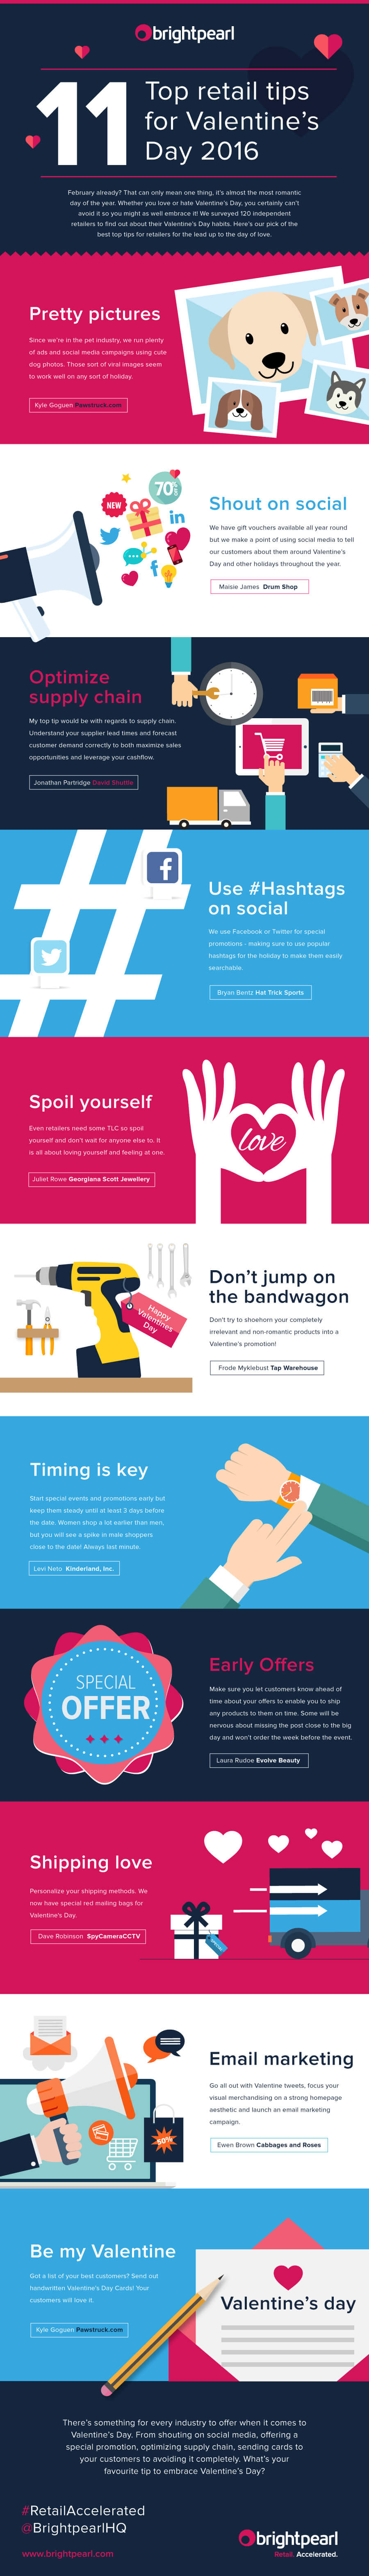 11 Top Retail Tips for Valentine's Day